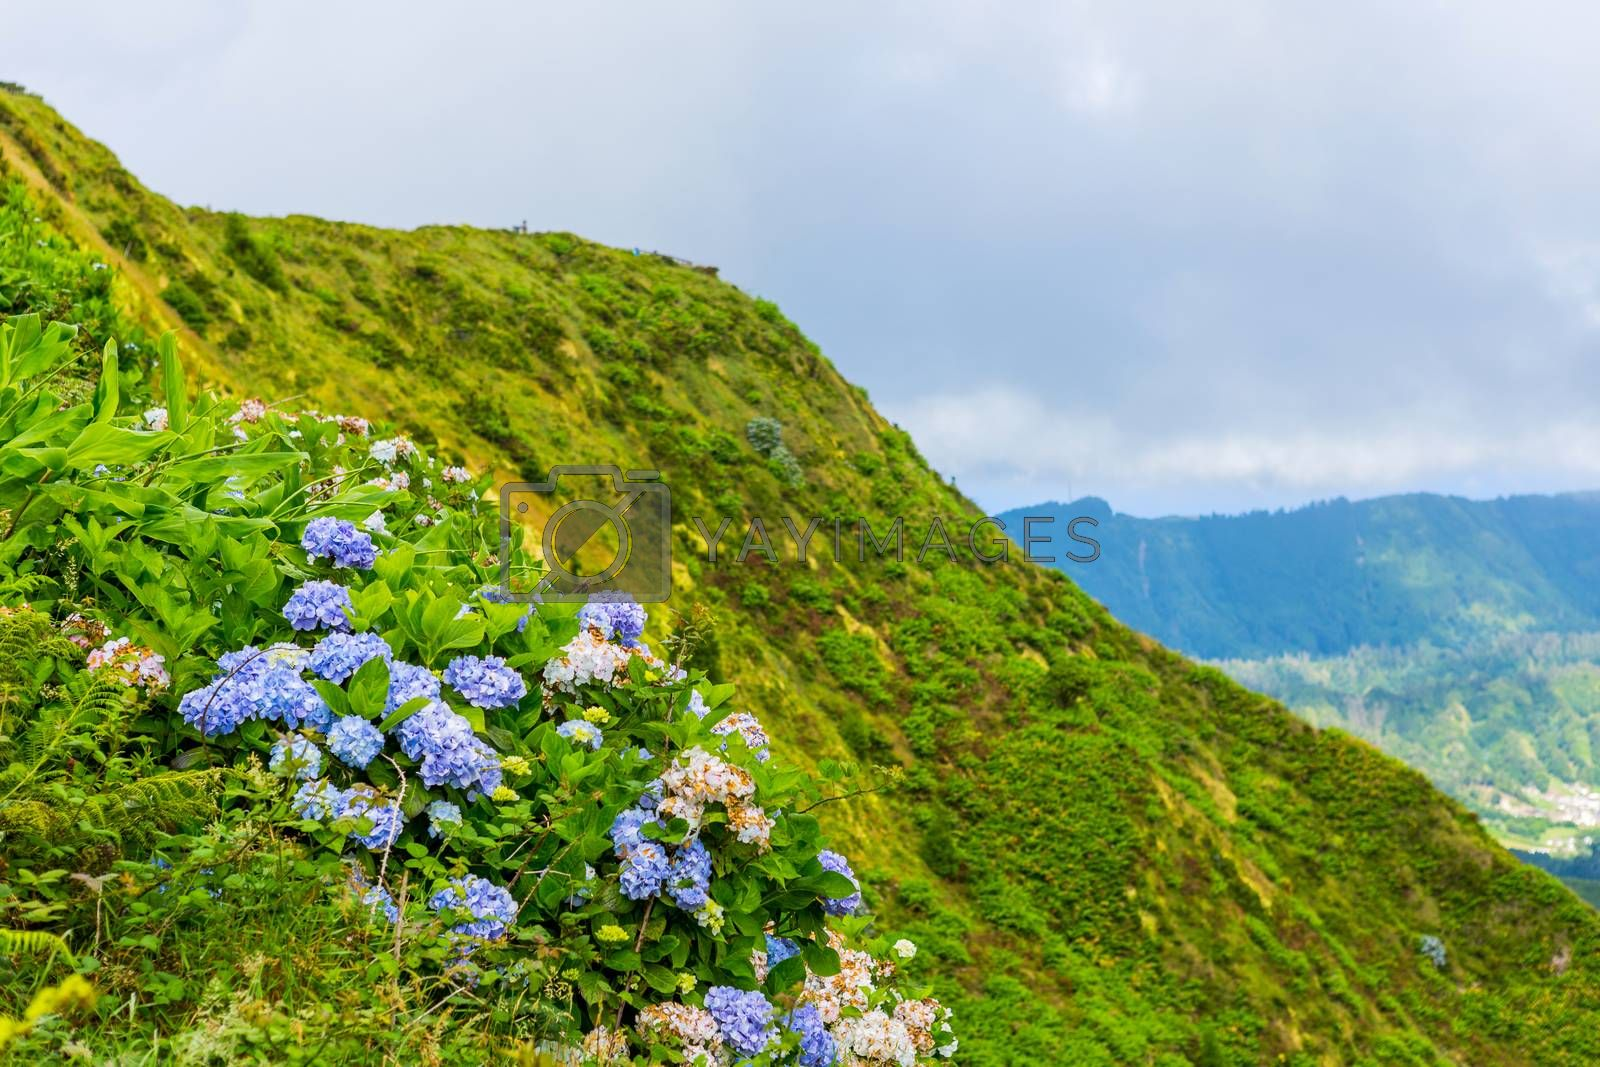 Royalty free image of wild flowers in the mountain by zittto